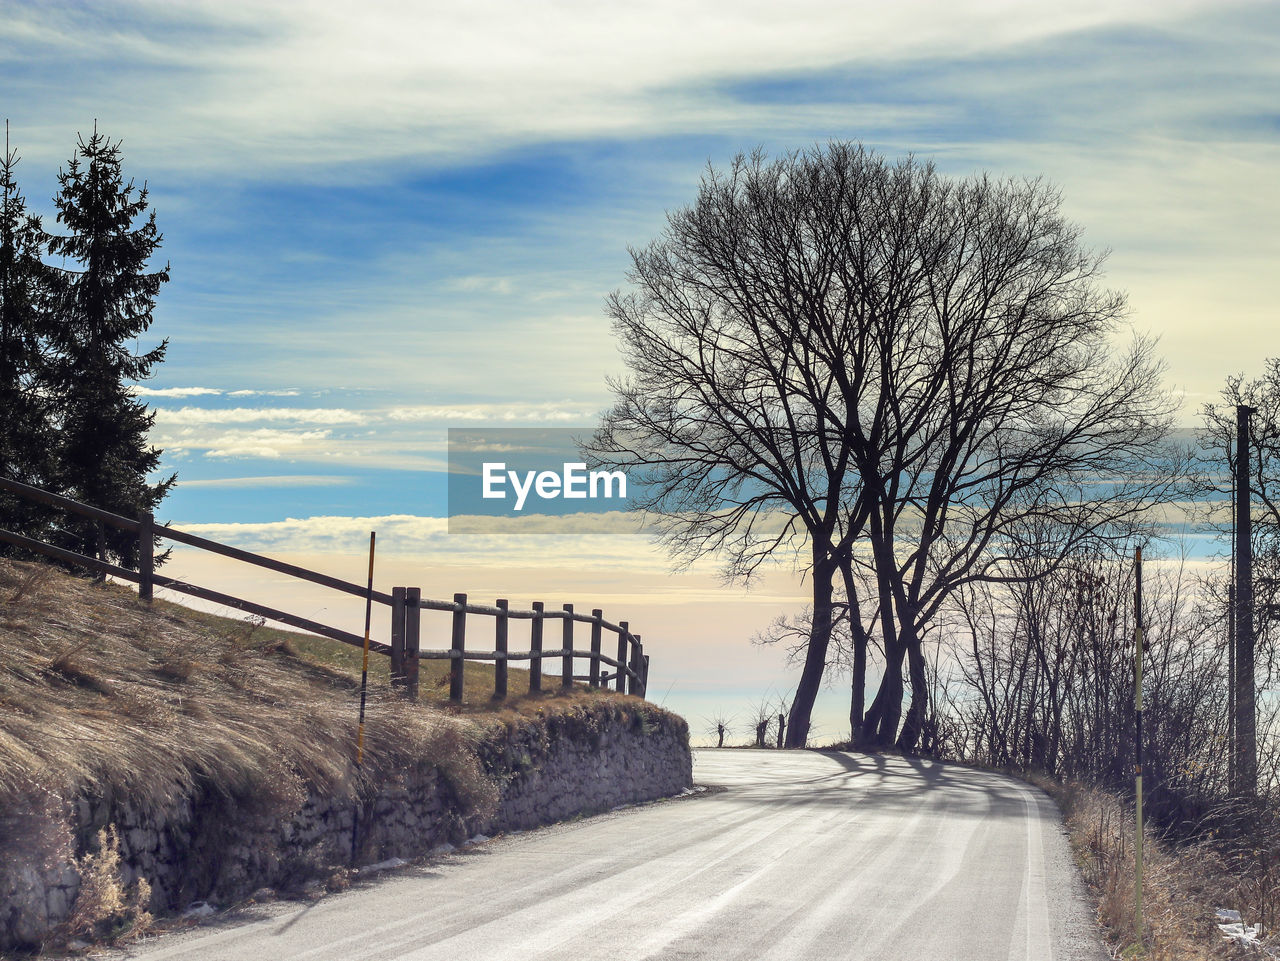 sky, tree, cloud - sky, road, bare tree, direction, the way forward, plant, nature, transportation, no people, day, railing, scenics - nature, outdoors, tranquility, tranquil scene, footpath, barrier, beauty in nature, long